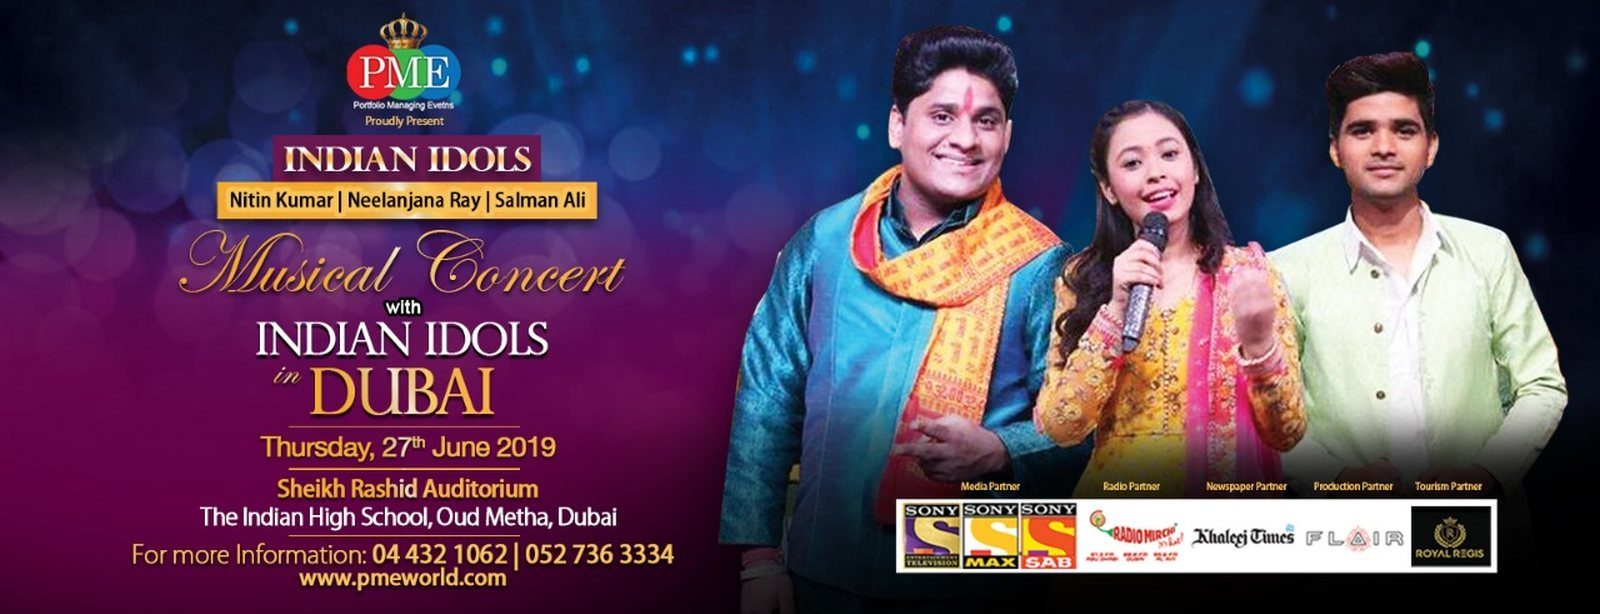 Indian Idols Musical Concert Tickets Portfolio Managing Events